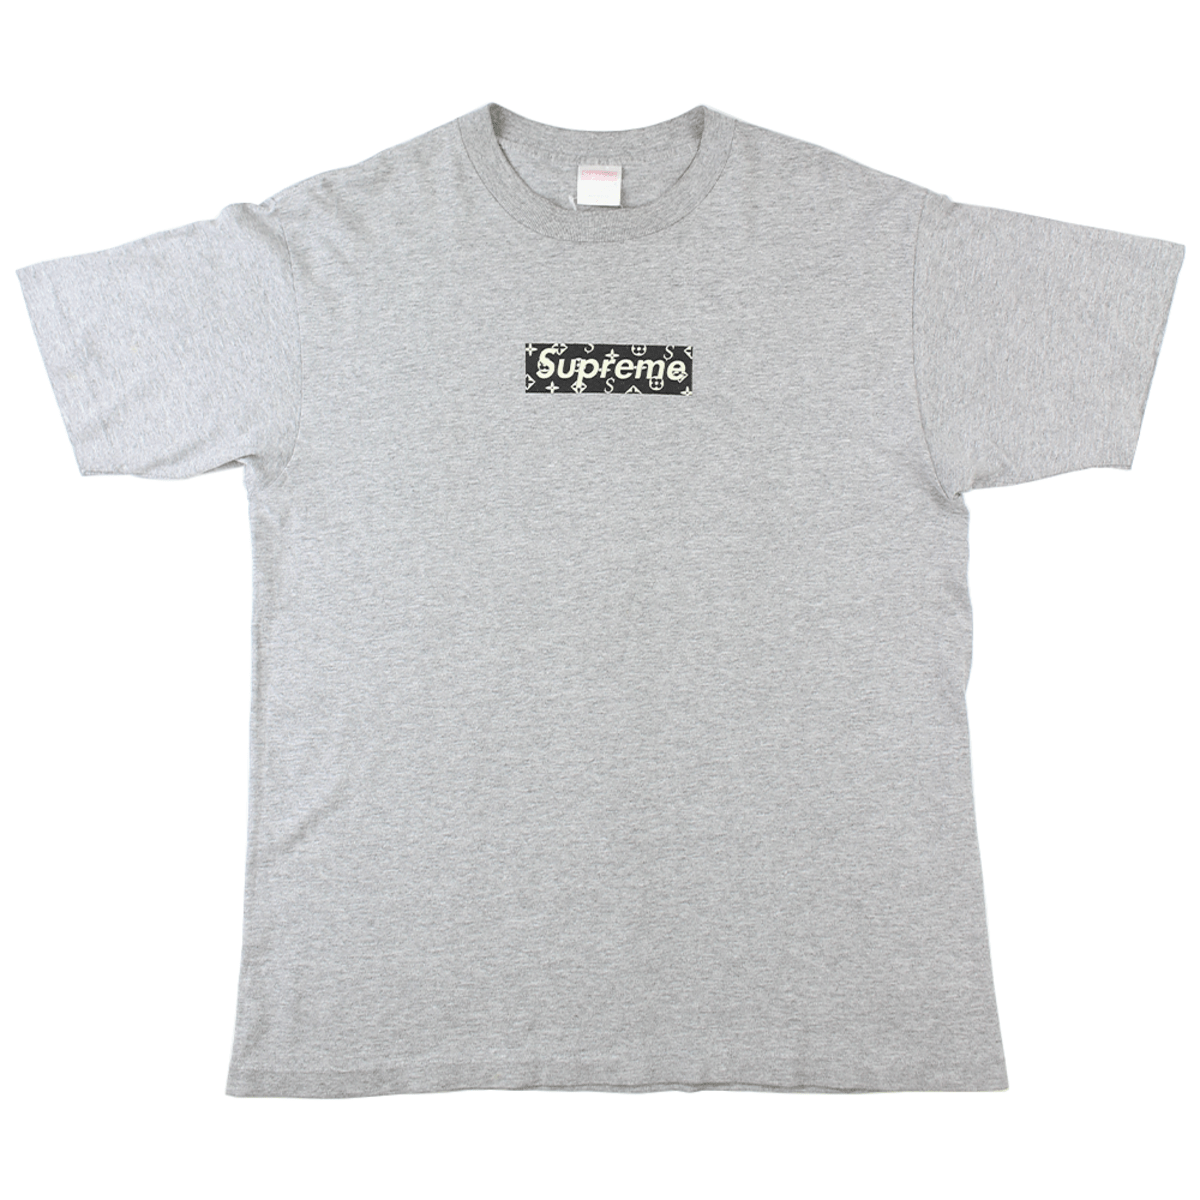 Supreme X Lv Box Logo Tee Grey